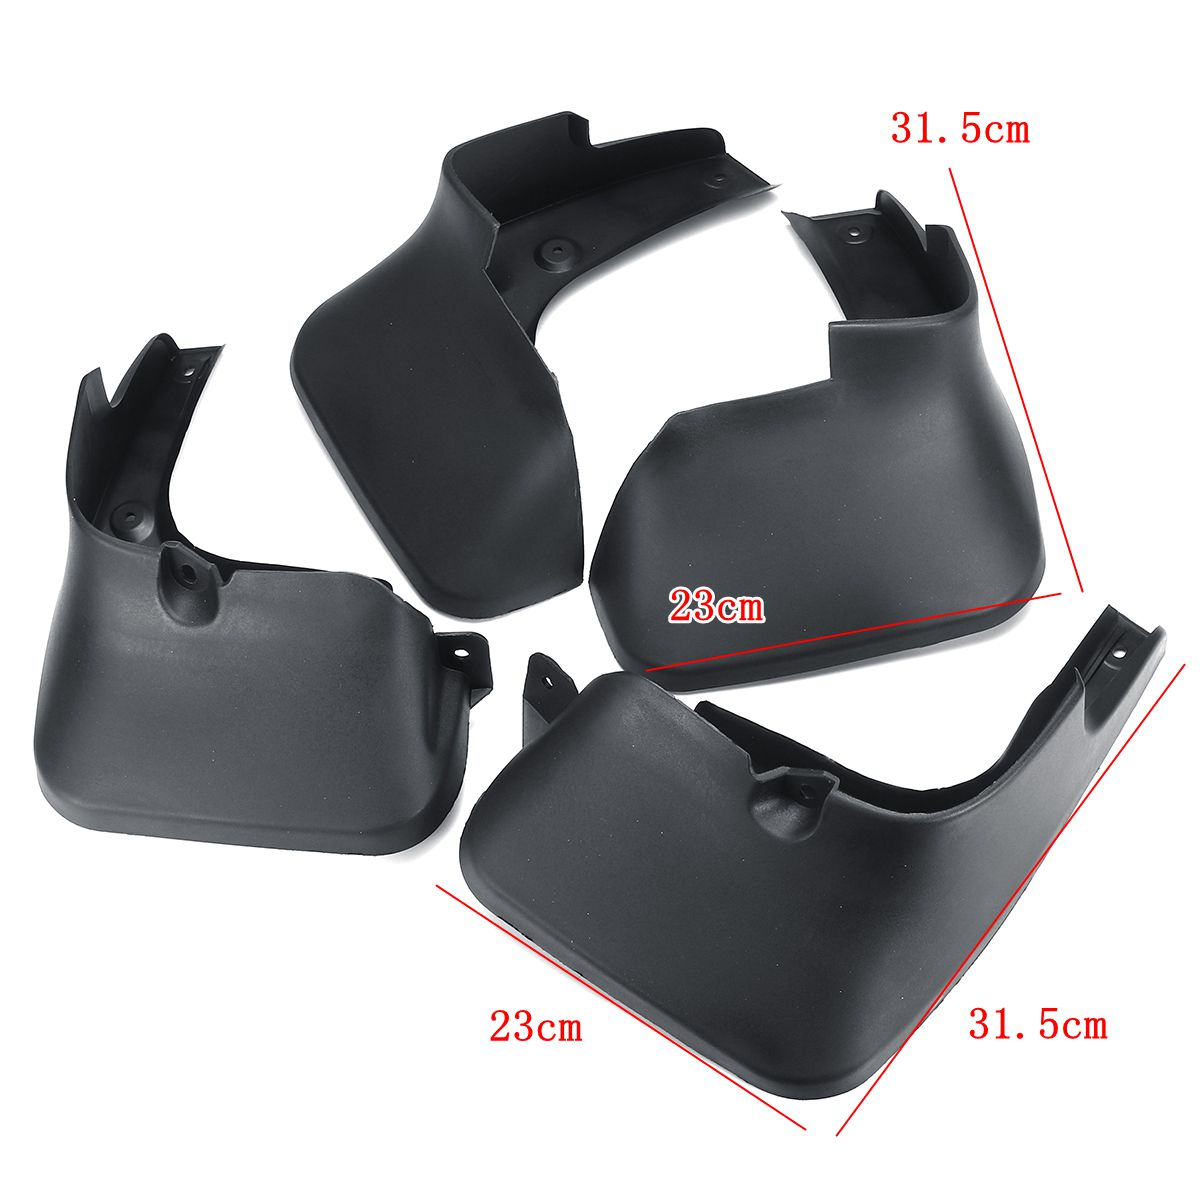 Image 5 - Car Mud Flaps For LEXUS RX RX270 RX300 RX350 RX450H 2010 2015 Splash Guards Mudflaps Mudguards Accessories-in Mudguards from Automobiles & Motorcycles